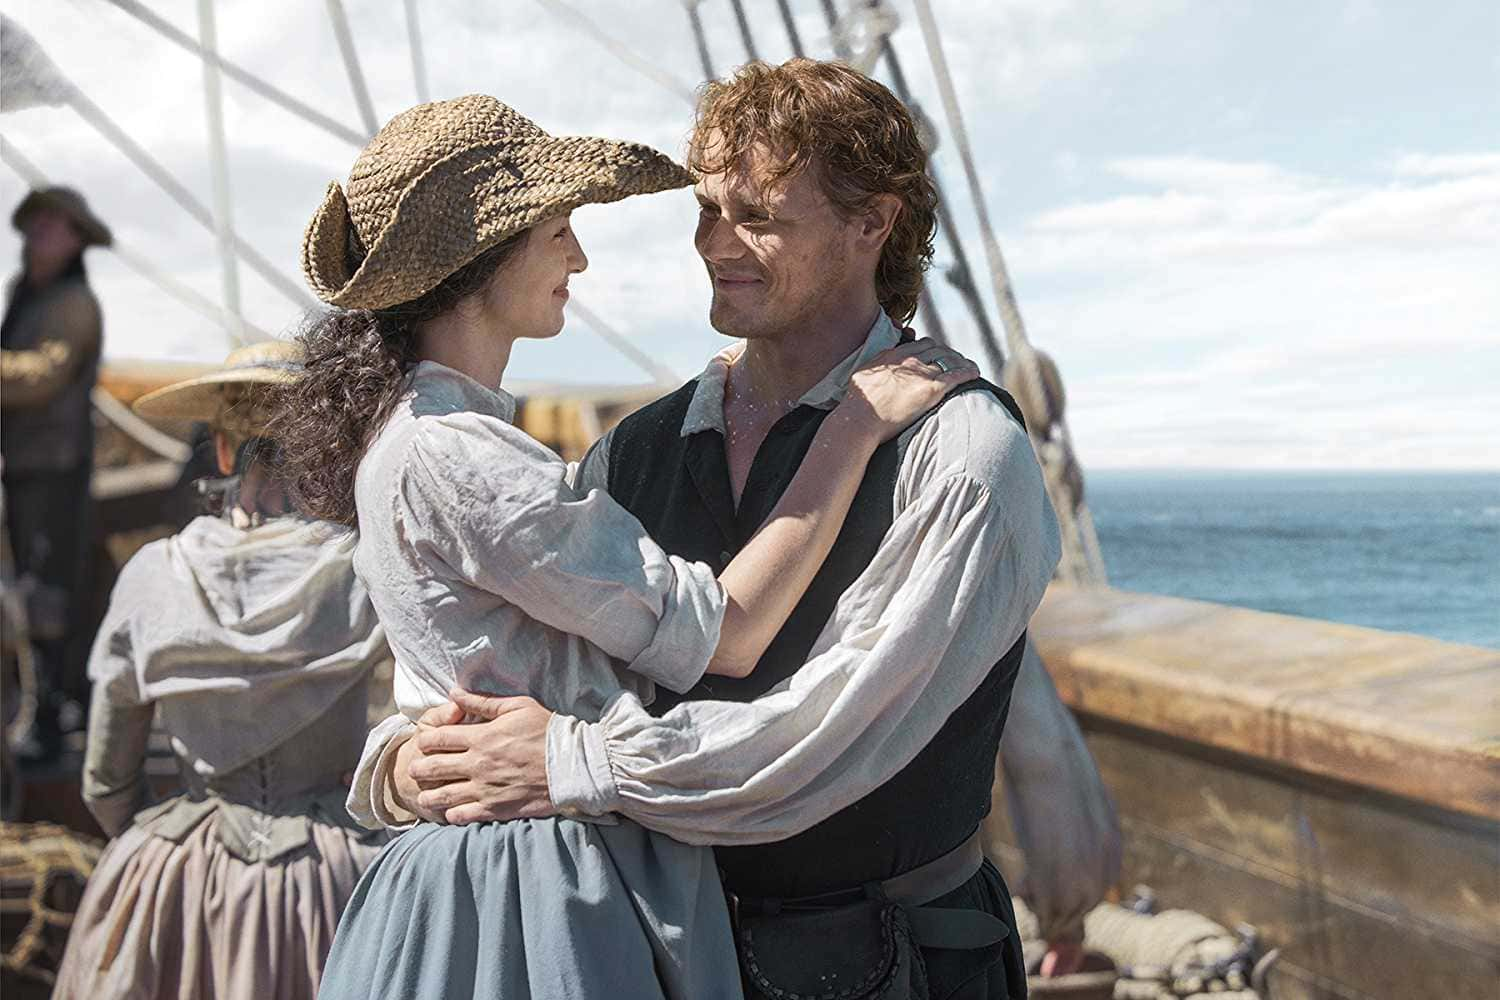 Season 3 saw Jamie and Claire shipwrecked in Georgia (Source: IMDb)